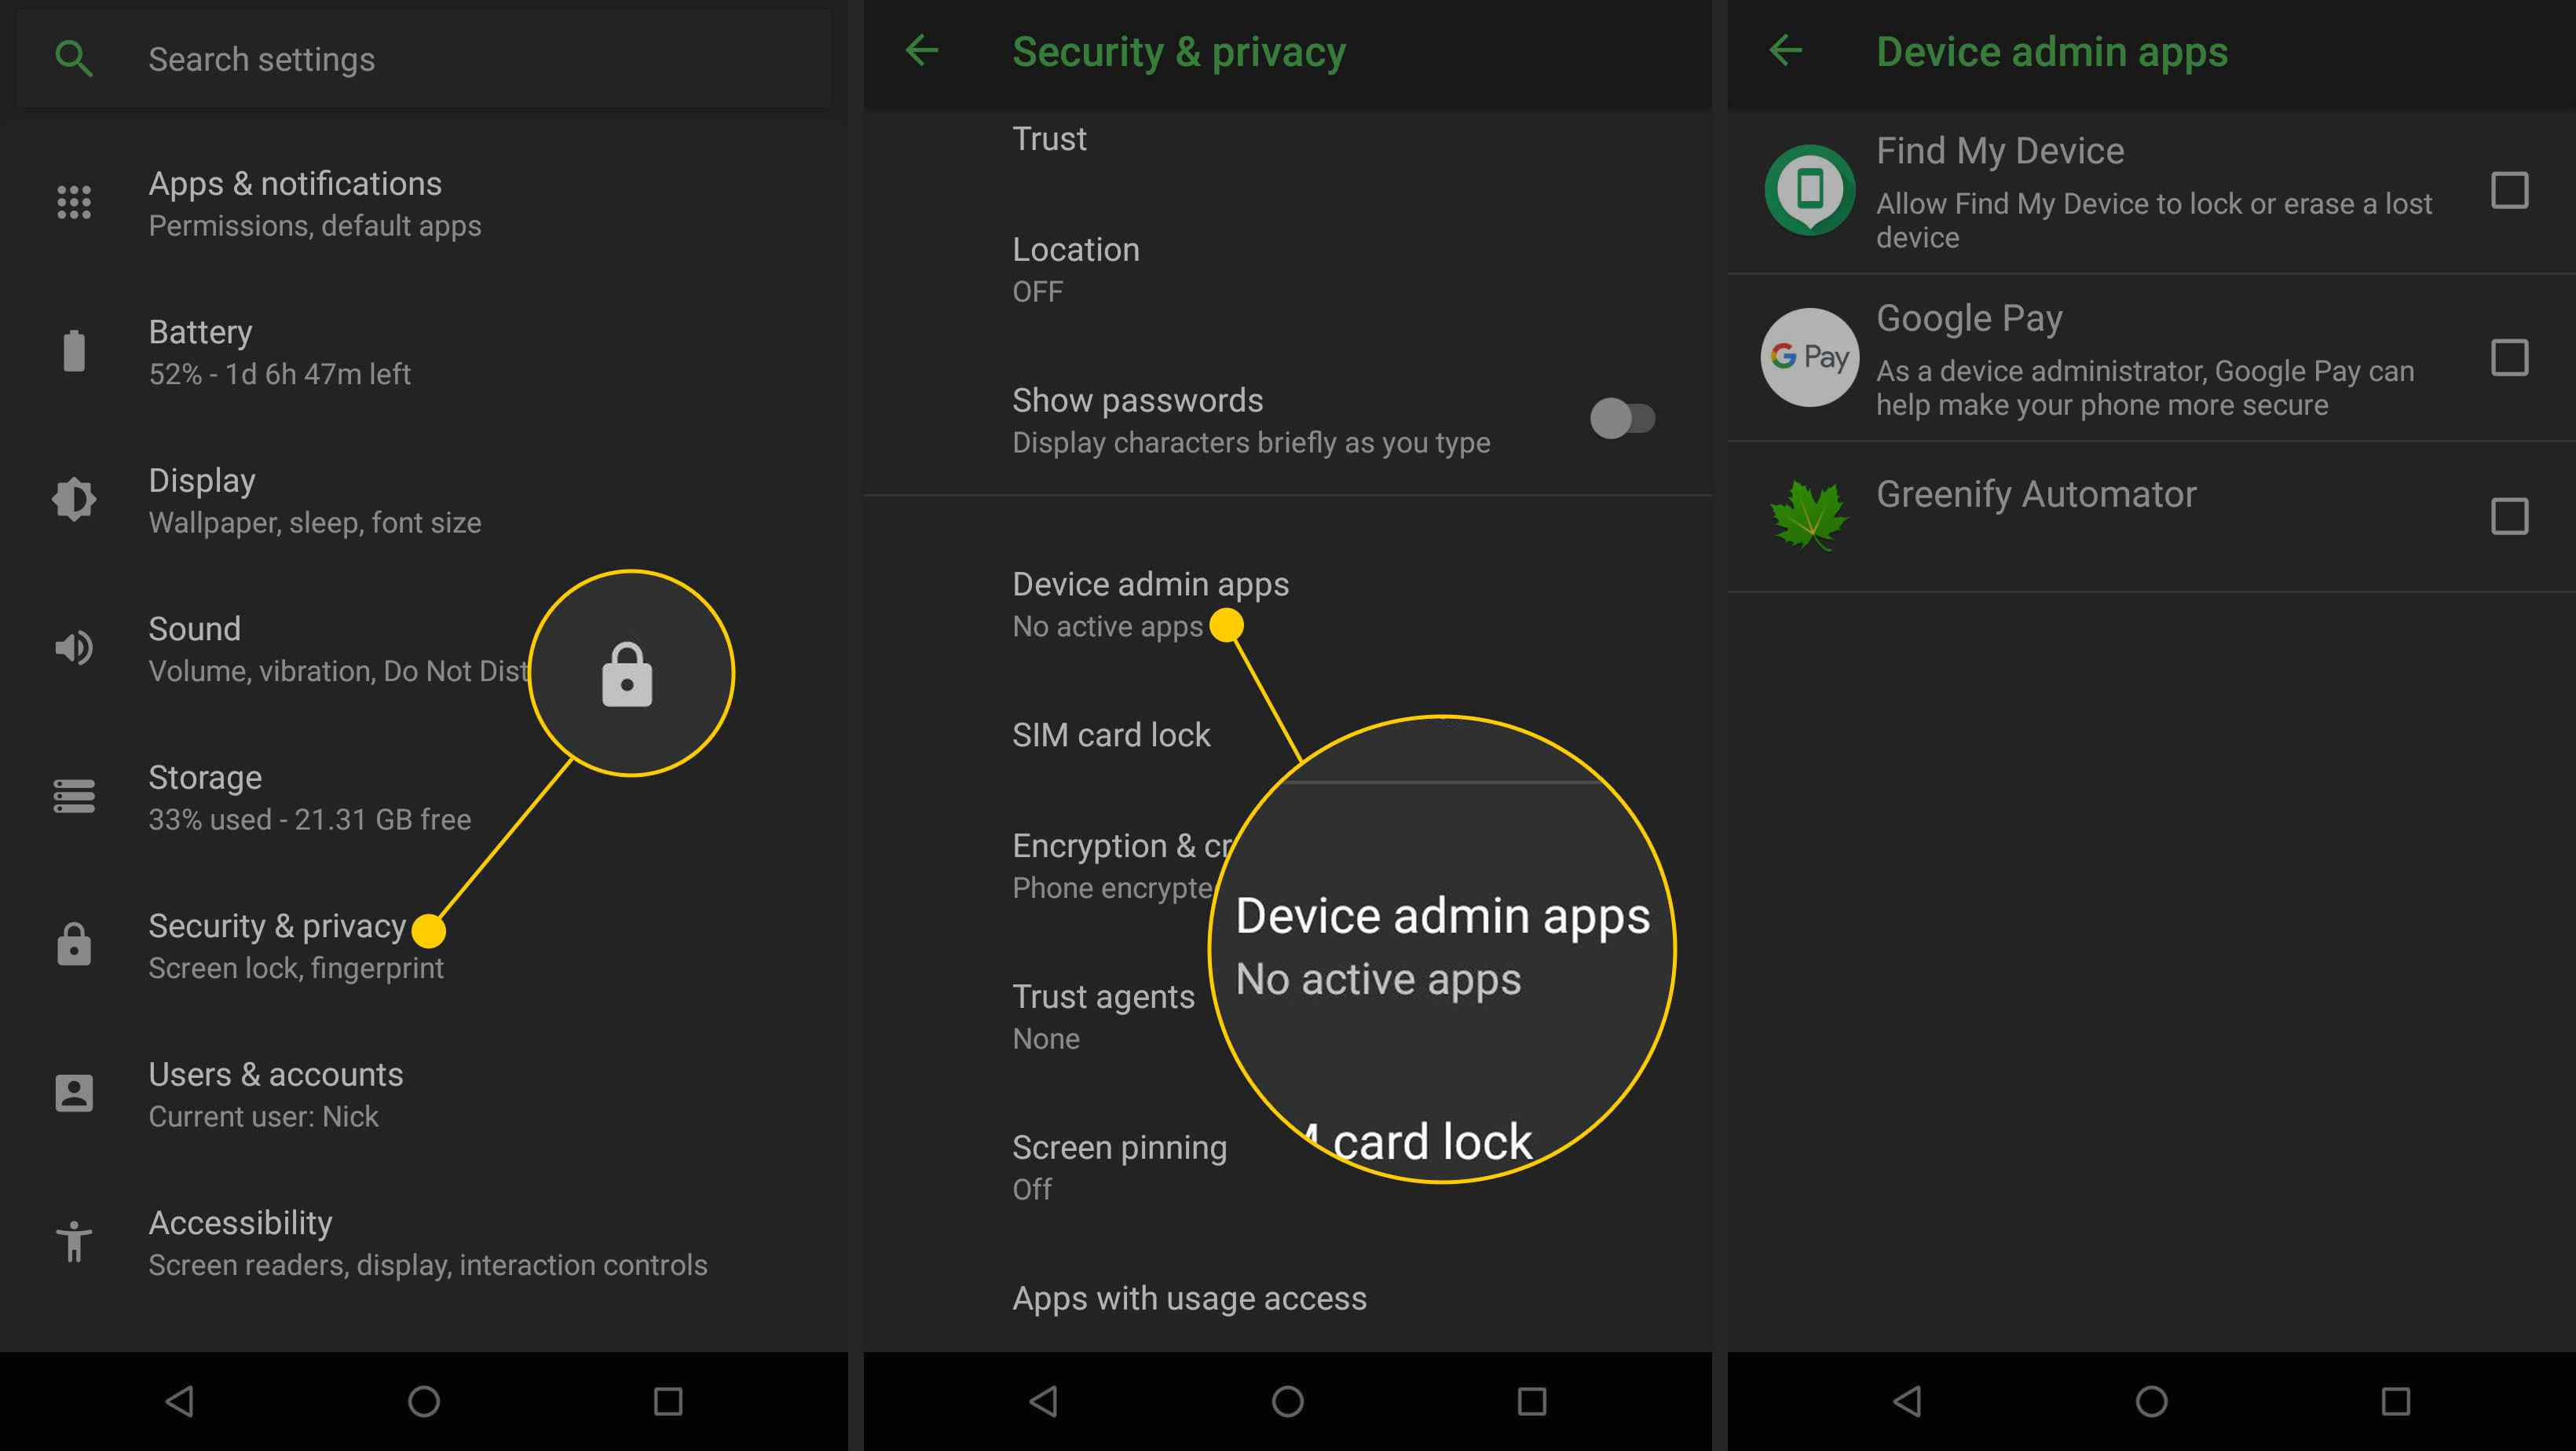 Android phone with the Security & Privacy and Device admin apps settings items highlighted